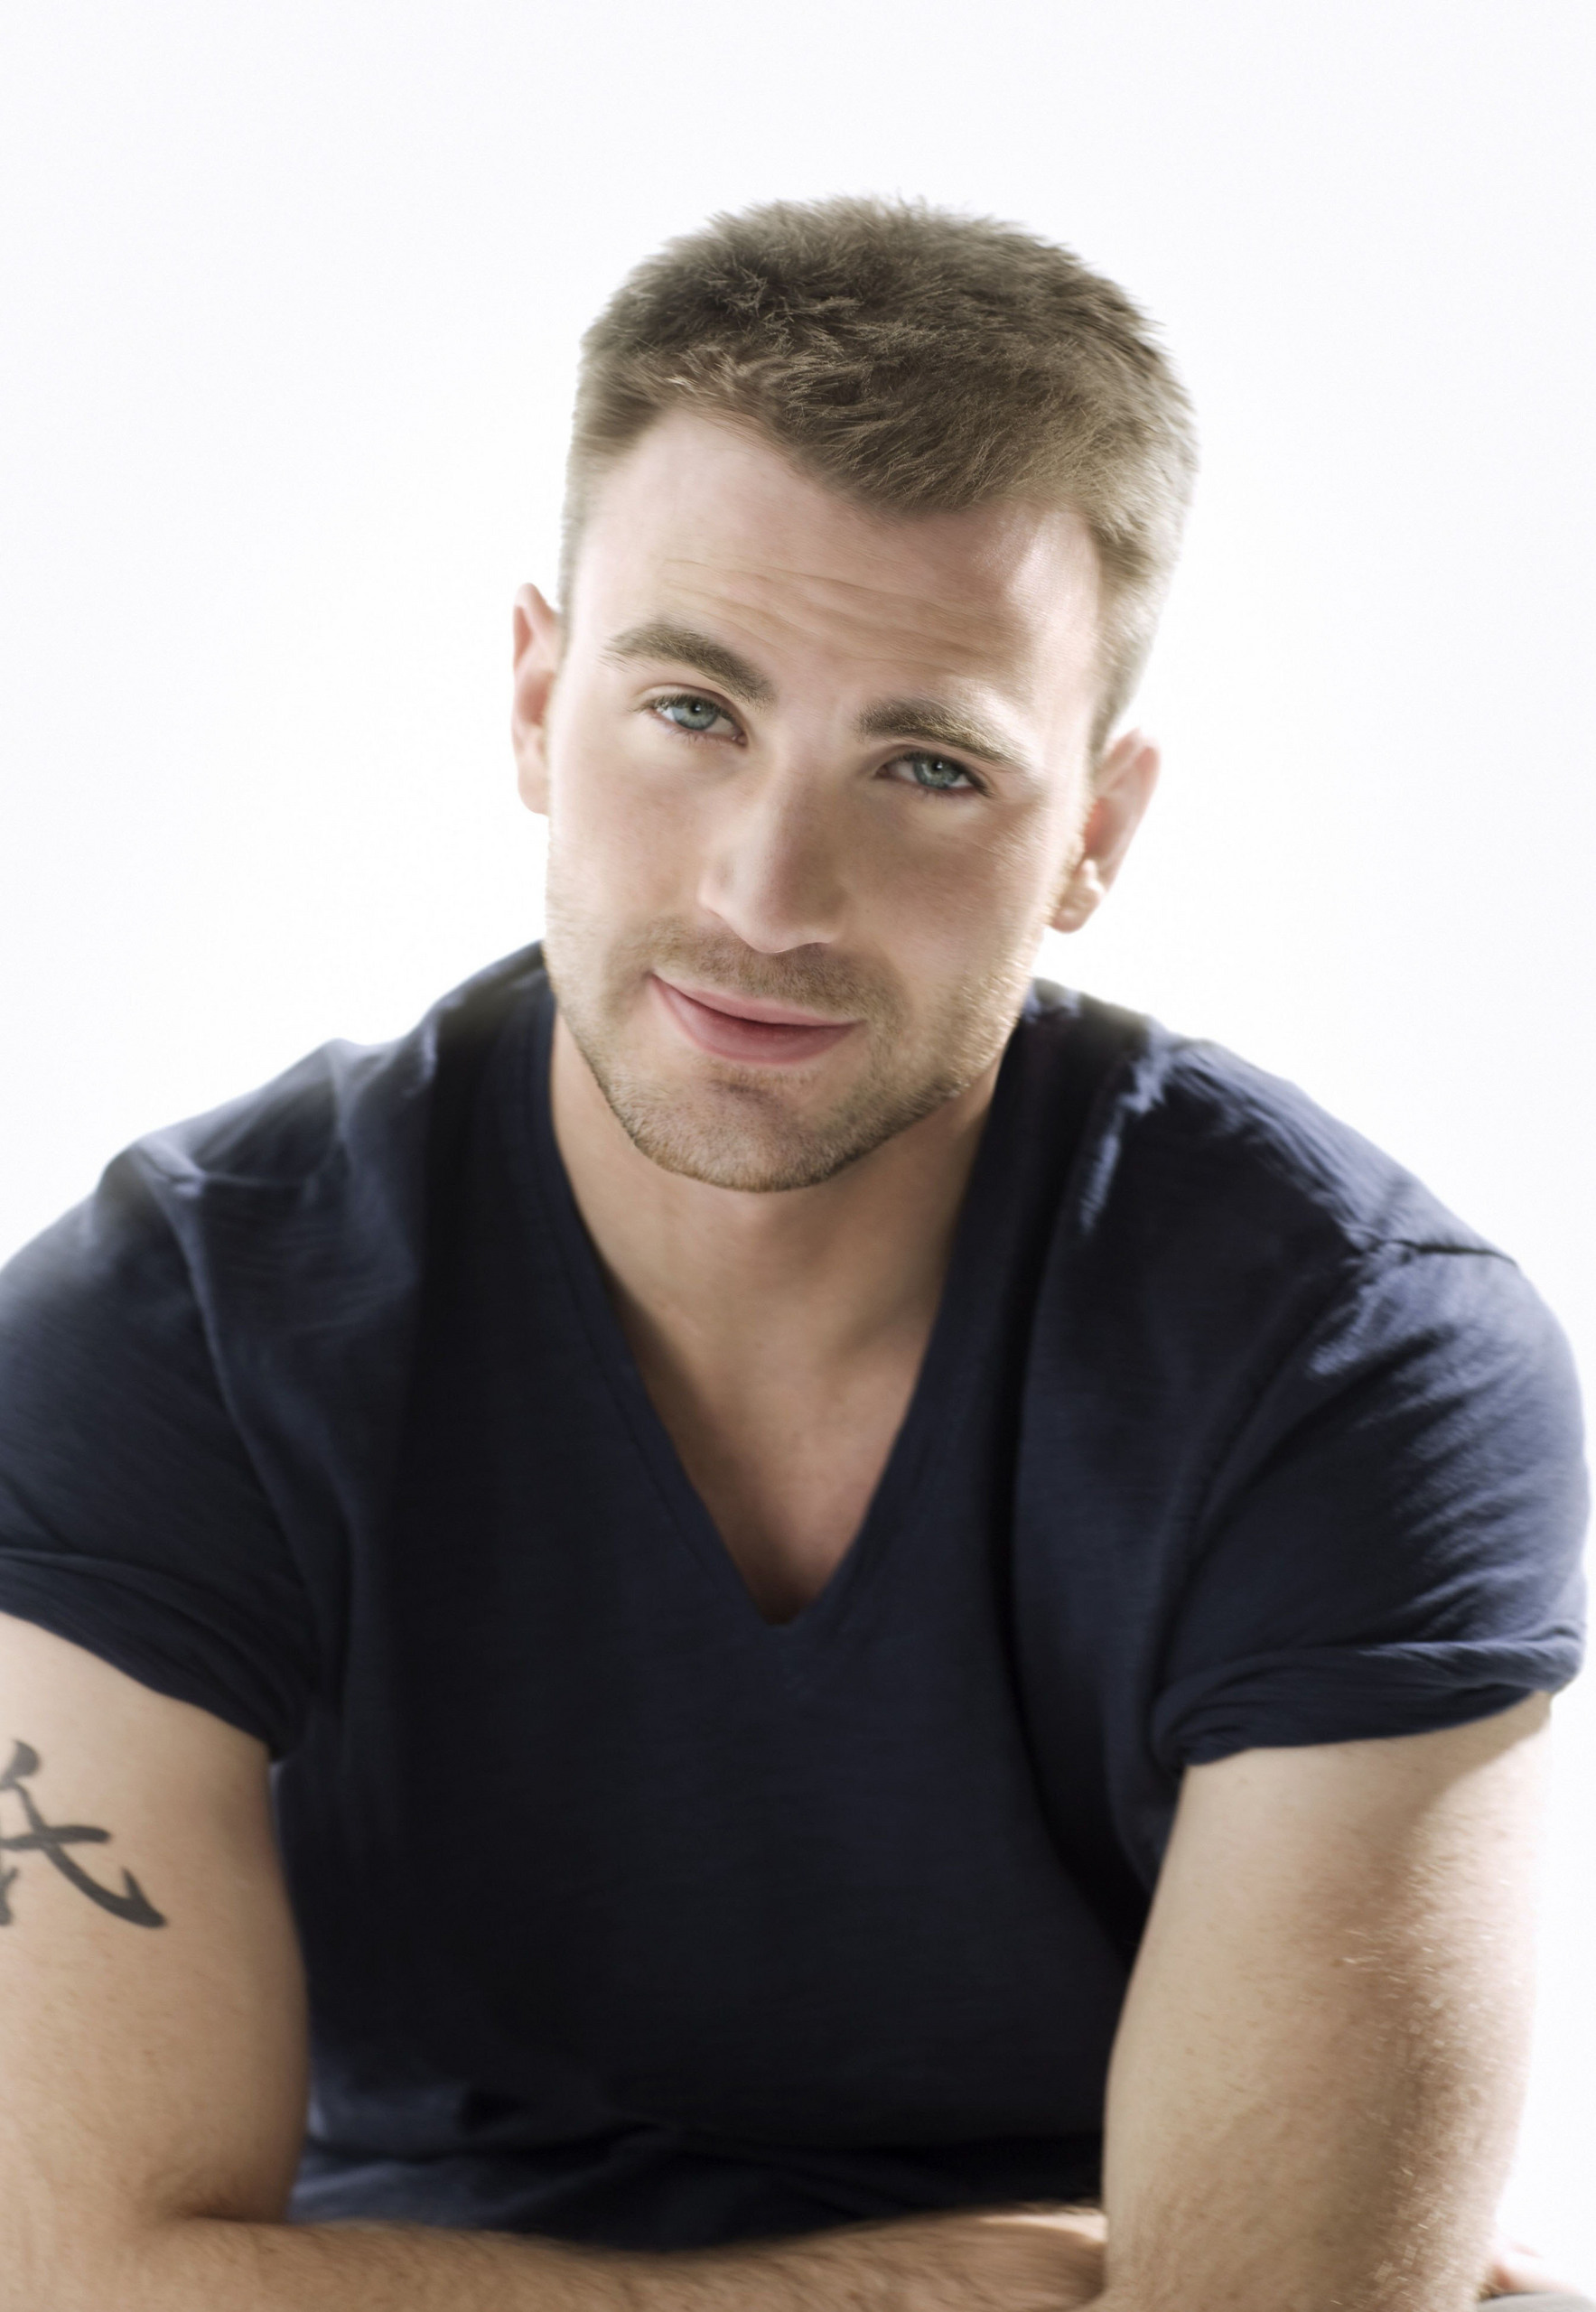 chris evans photoshoot